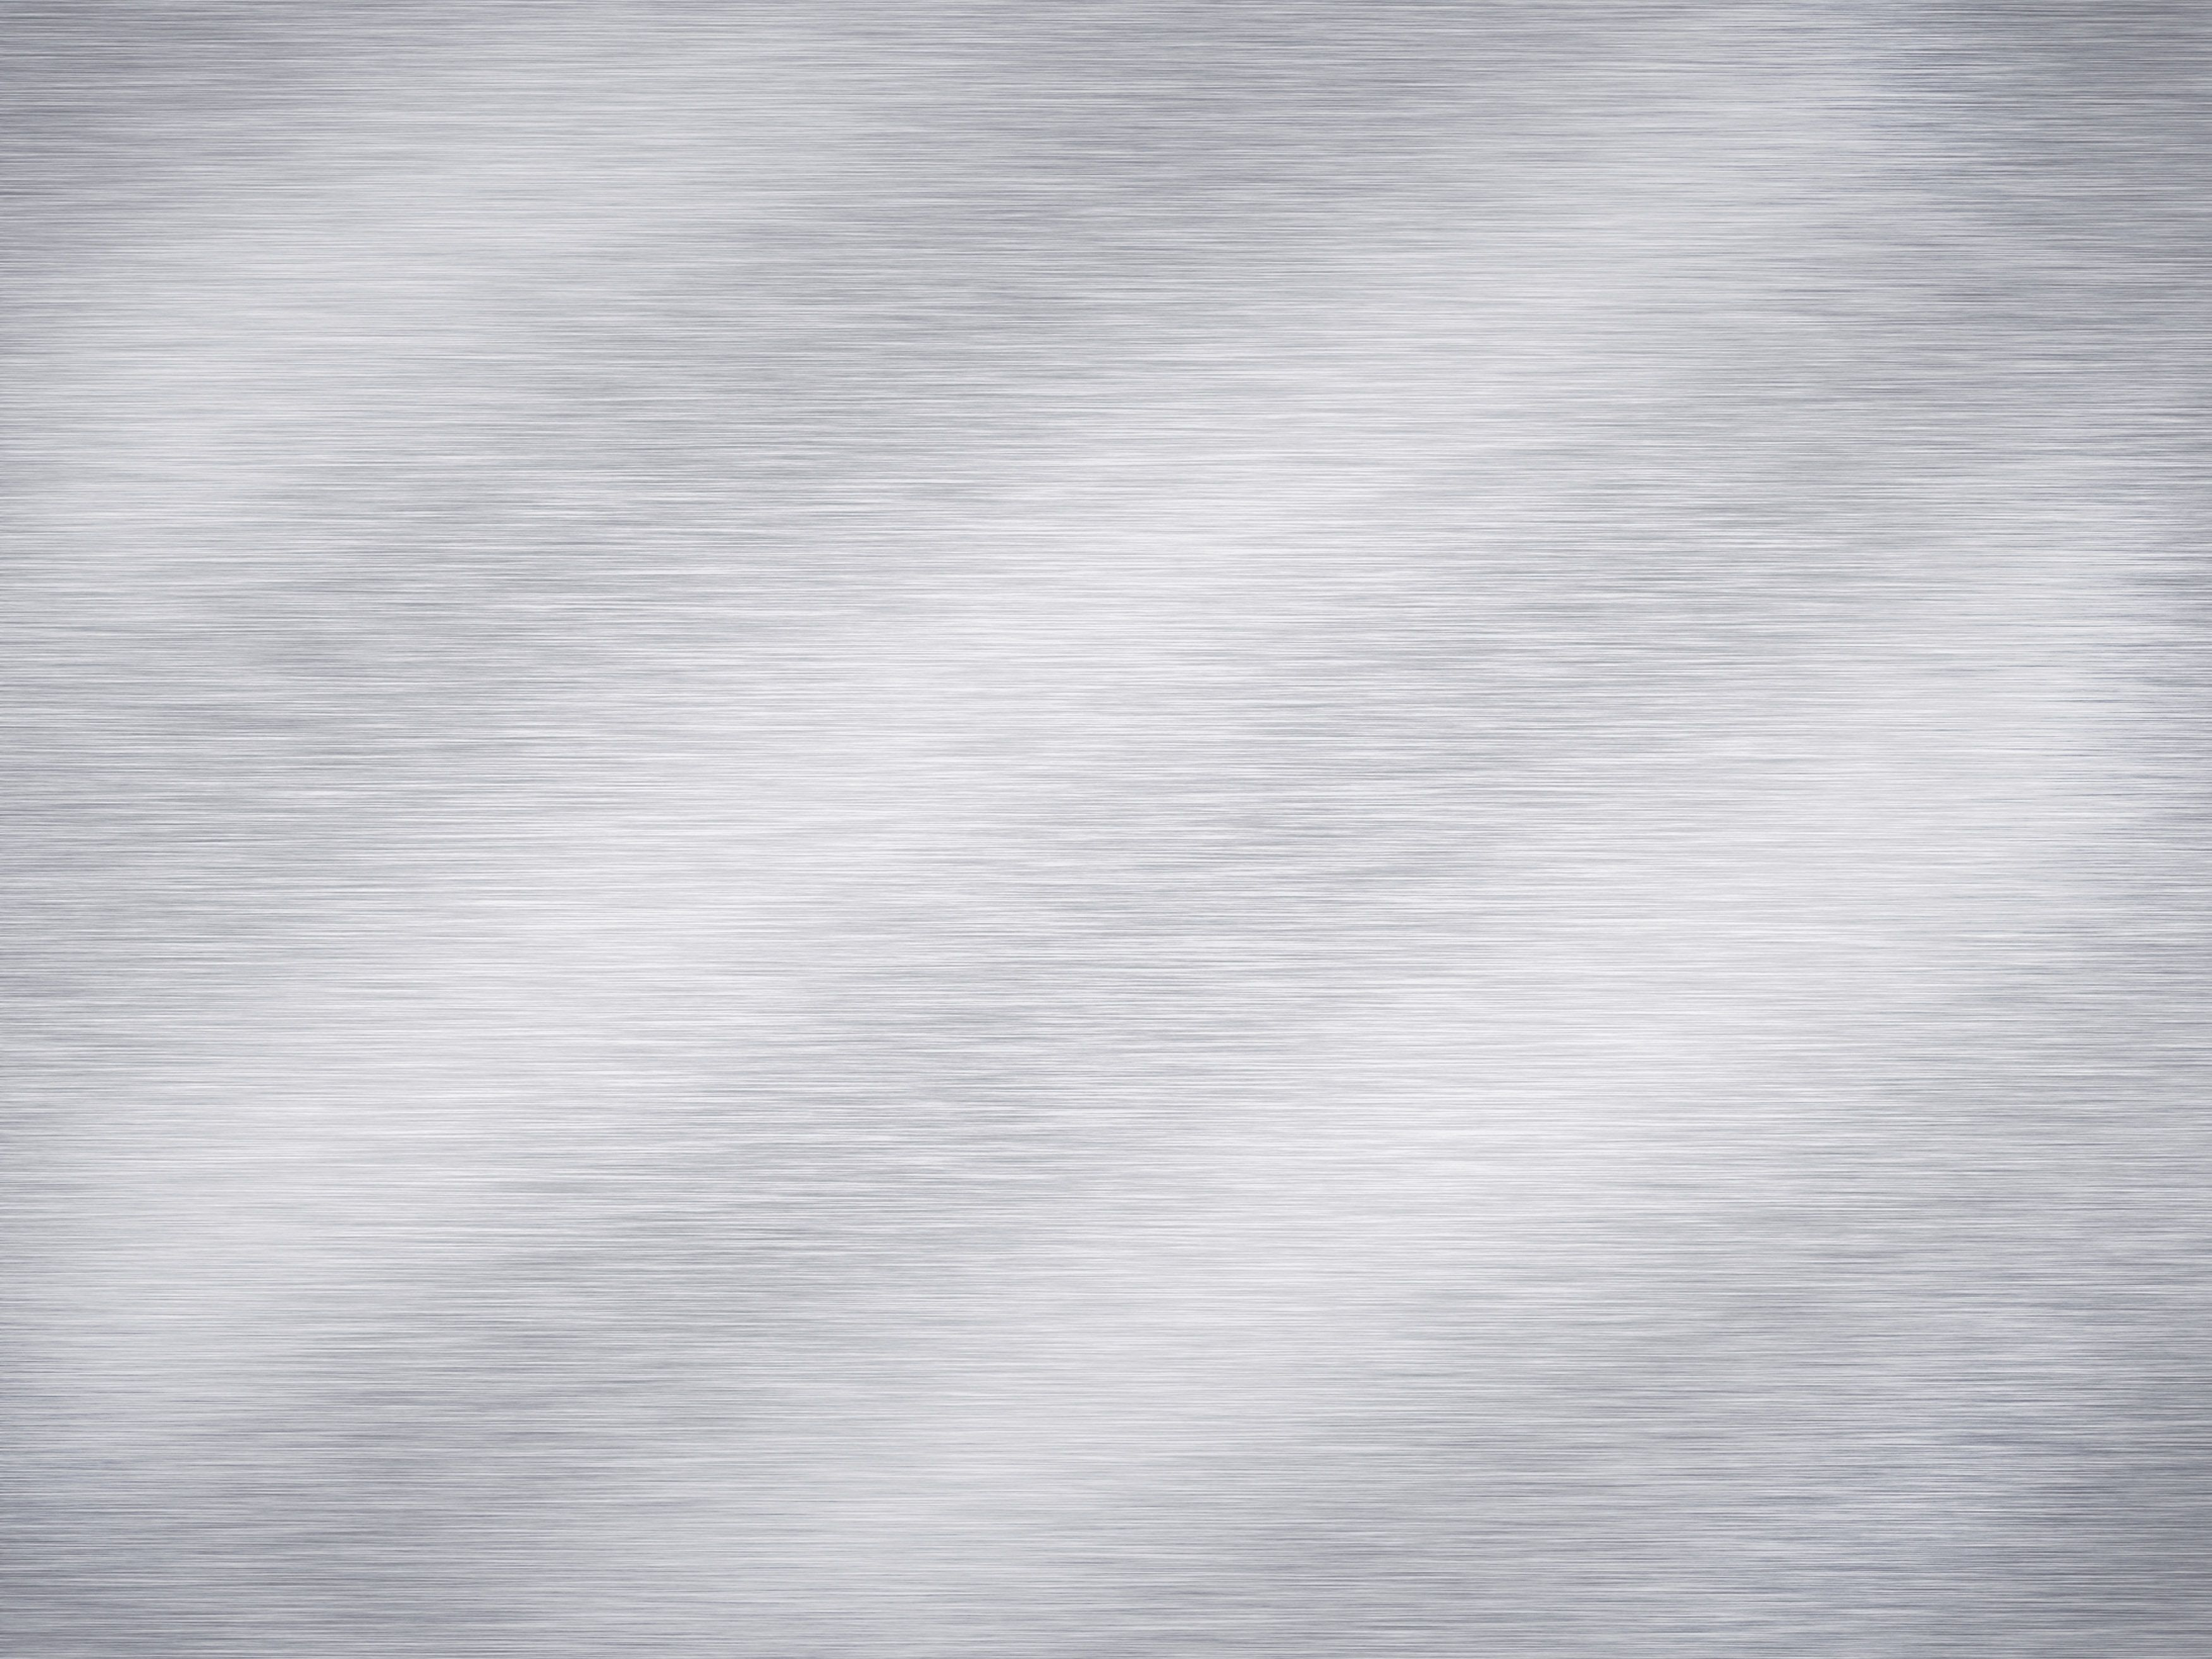 lightly brushed metal free texture background Brushed